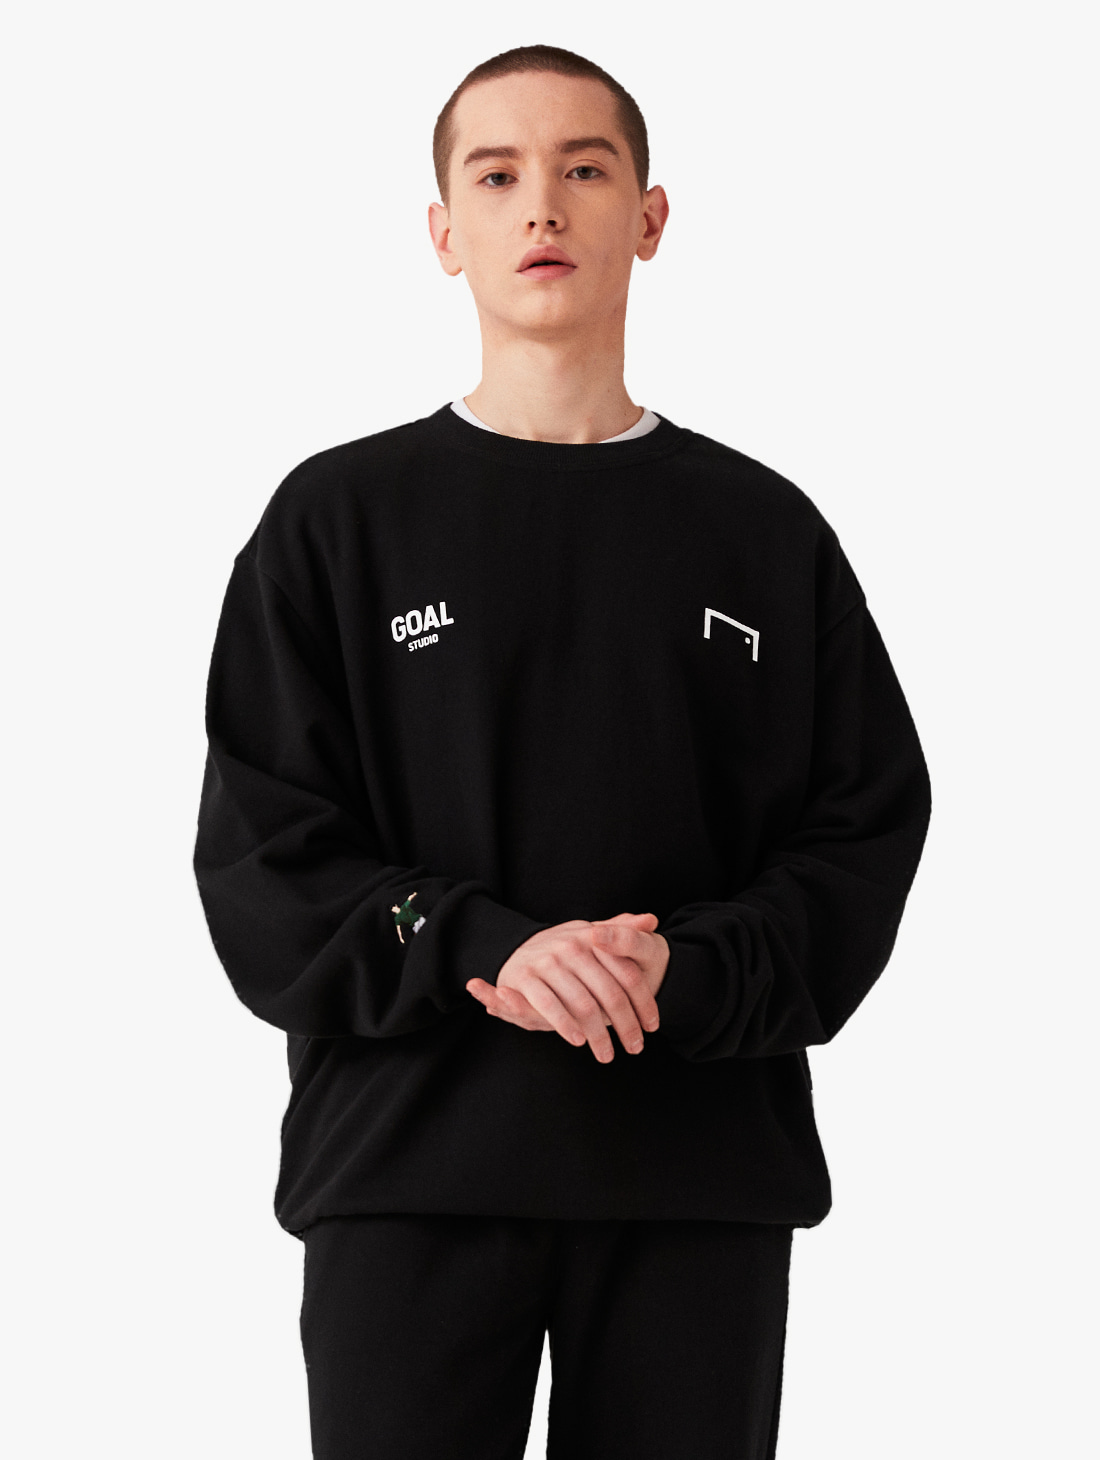 GOALSTUDIO SIGNATURE LOGO SWEATSHIRT 2.0 (3 Colors)